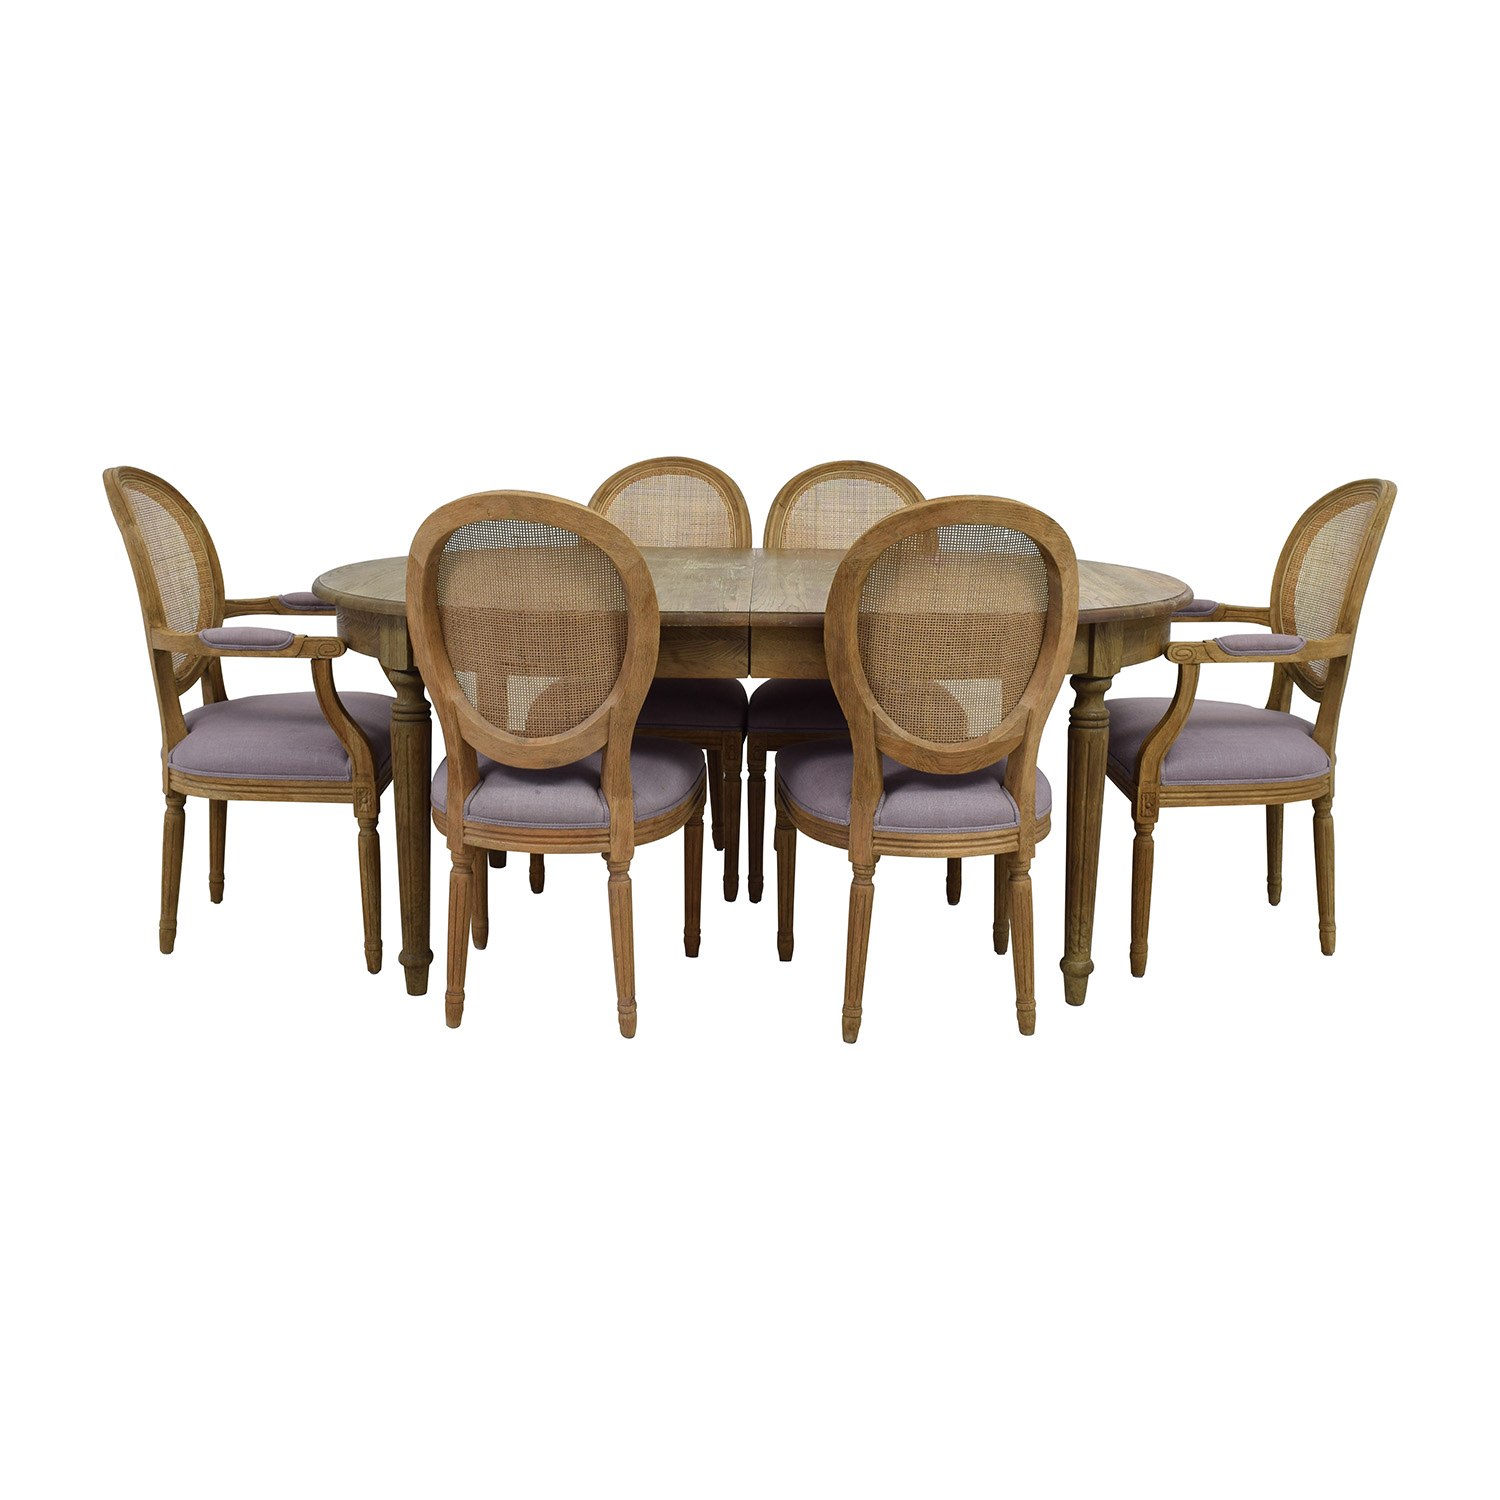 Restoration Hardware Restoration Hardware Rustic Extended Table with Six Chairs